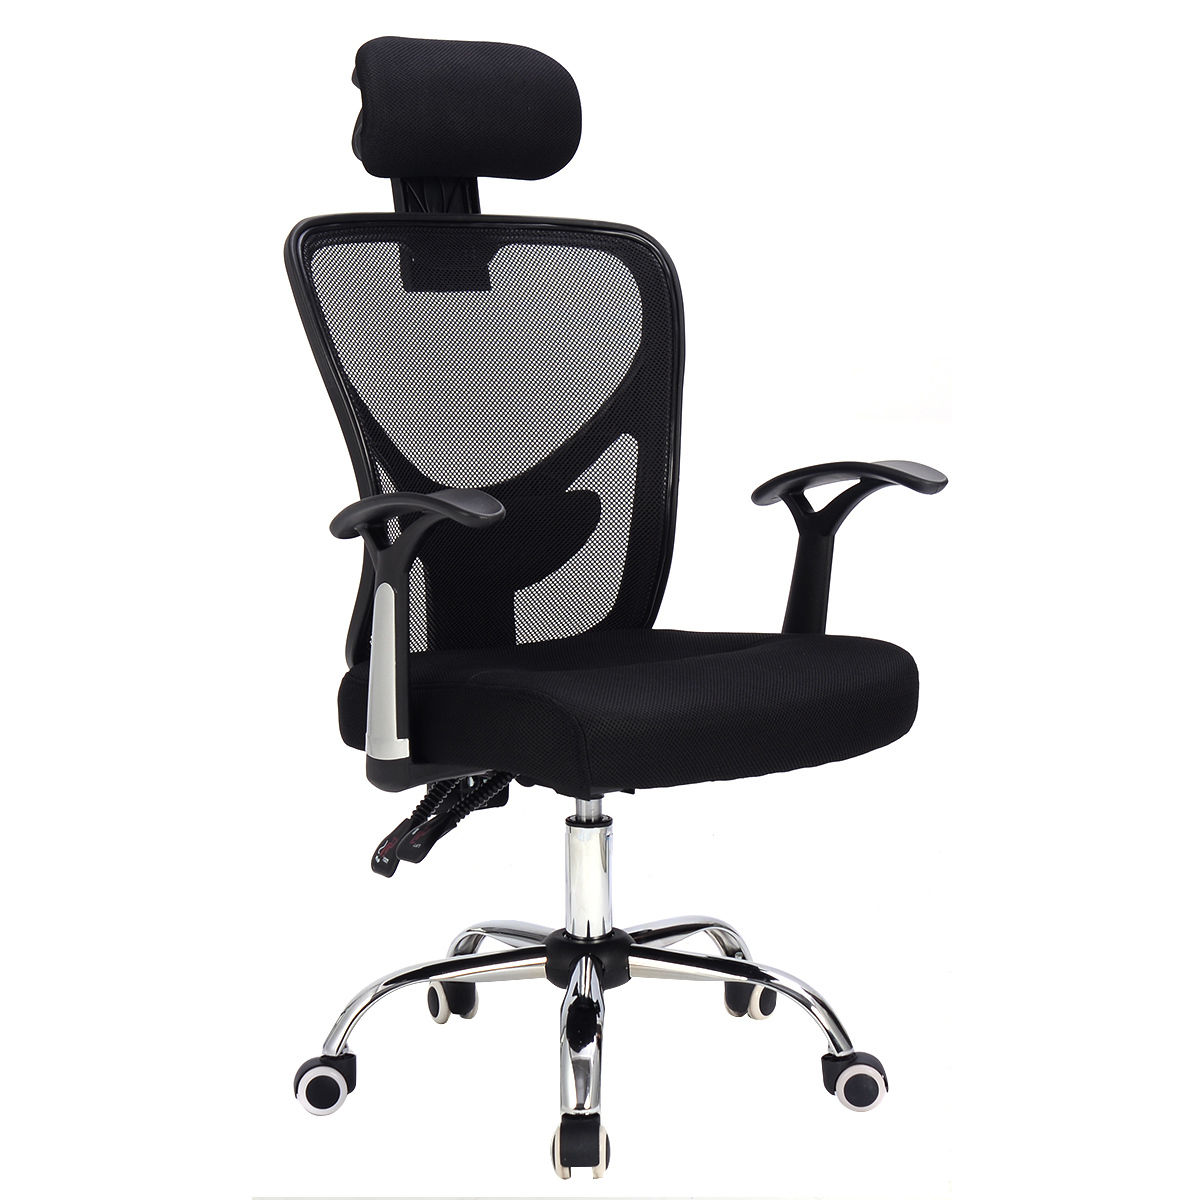 Costway Ergonomic Mesh High Back Office Chair Computer Desk Task Executive with Headrest